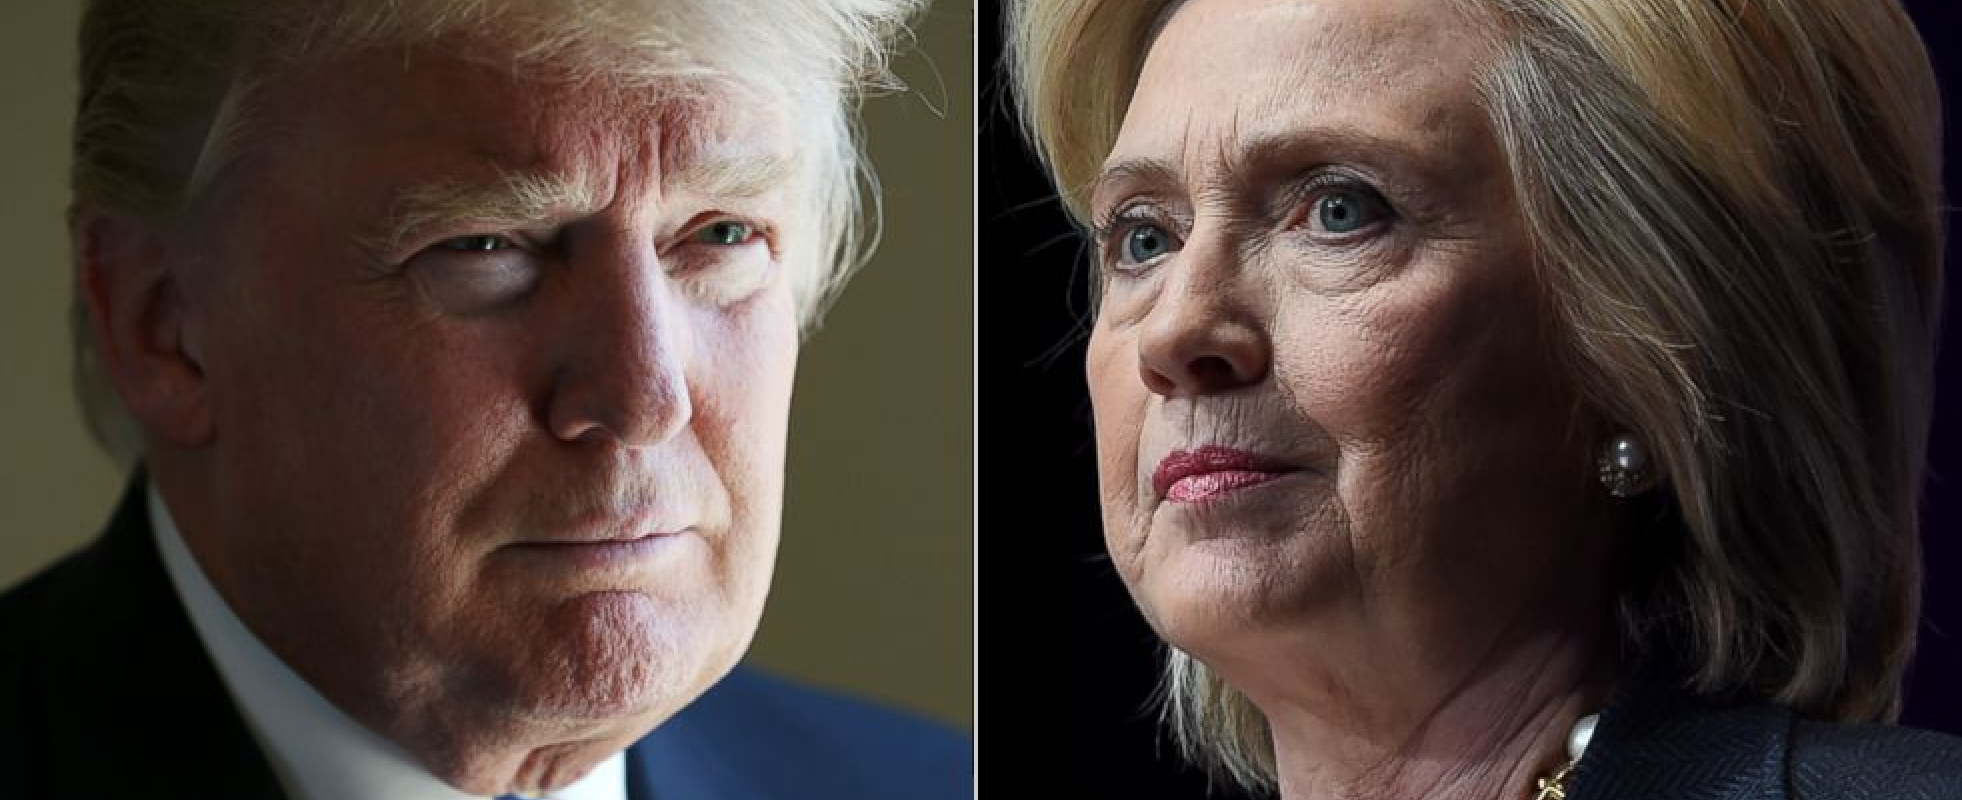 How the 2016 Election Could Affect Health Care